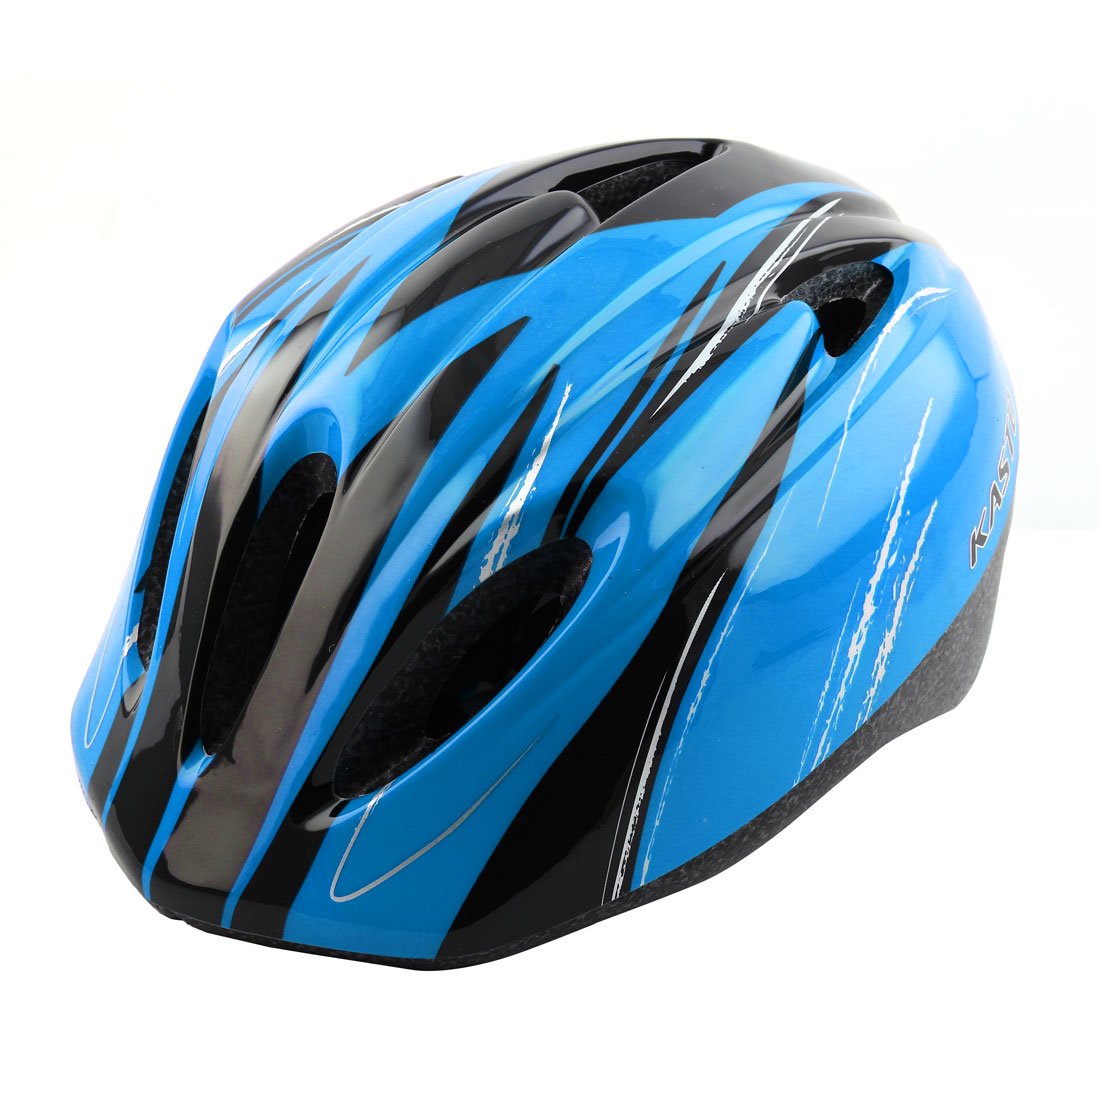 Boys Girls Adjustable Belt Removable Liner Skating Cycling Mountain Bicycle Cap Safety Bike Helmet Blue